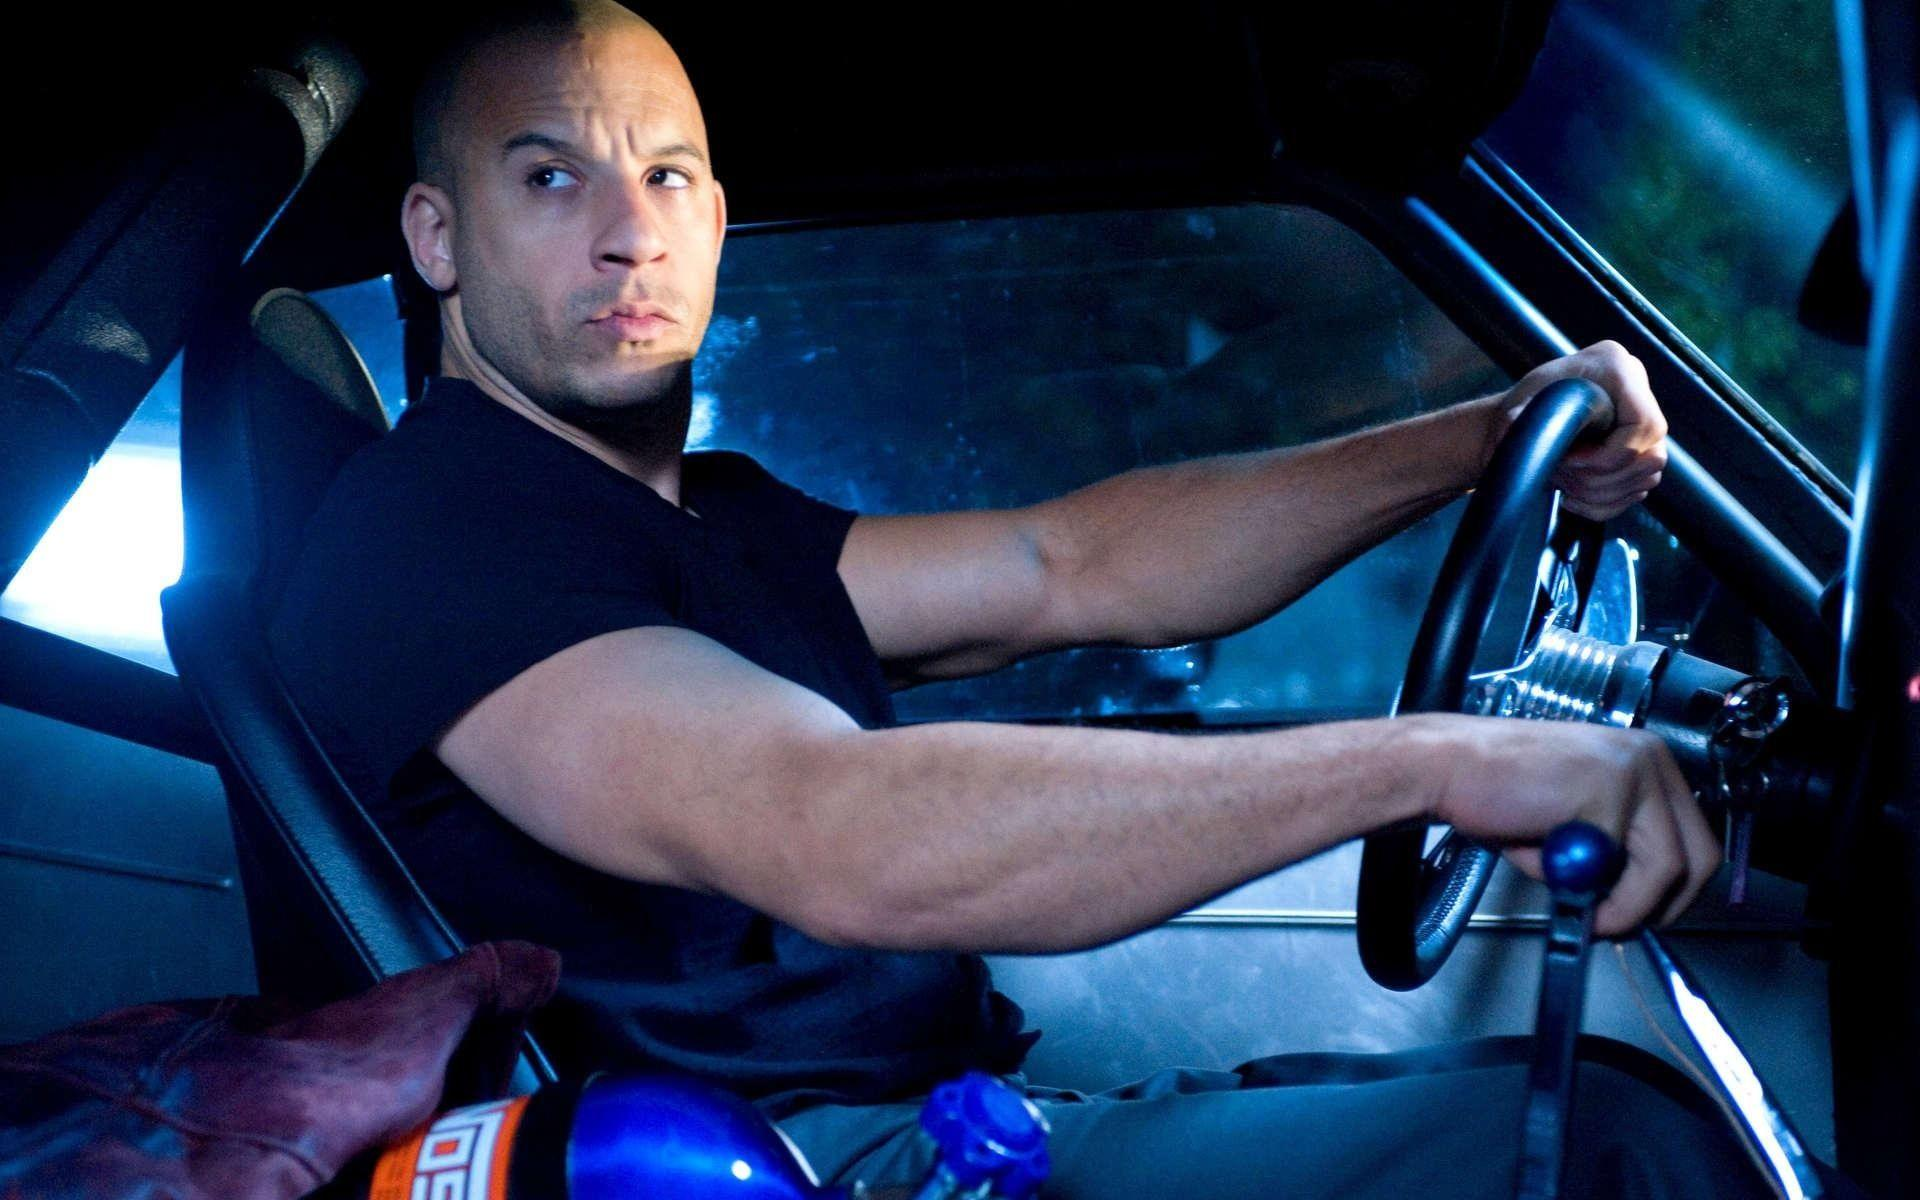 Vin Diesel Wallpapers | Free Desk Wallpapers